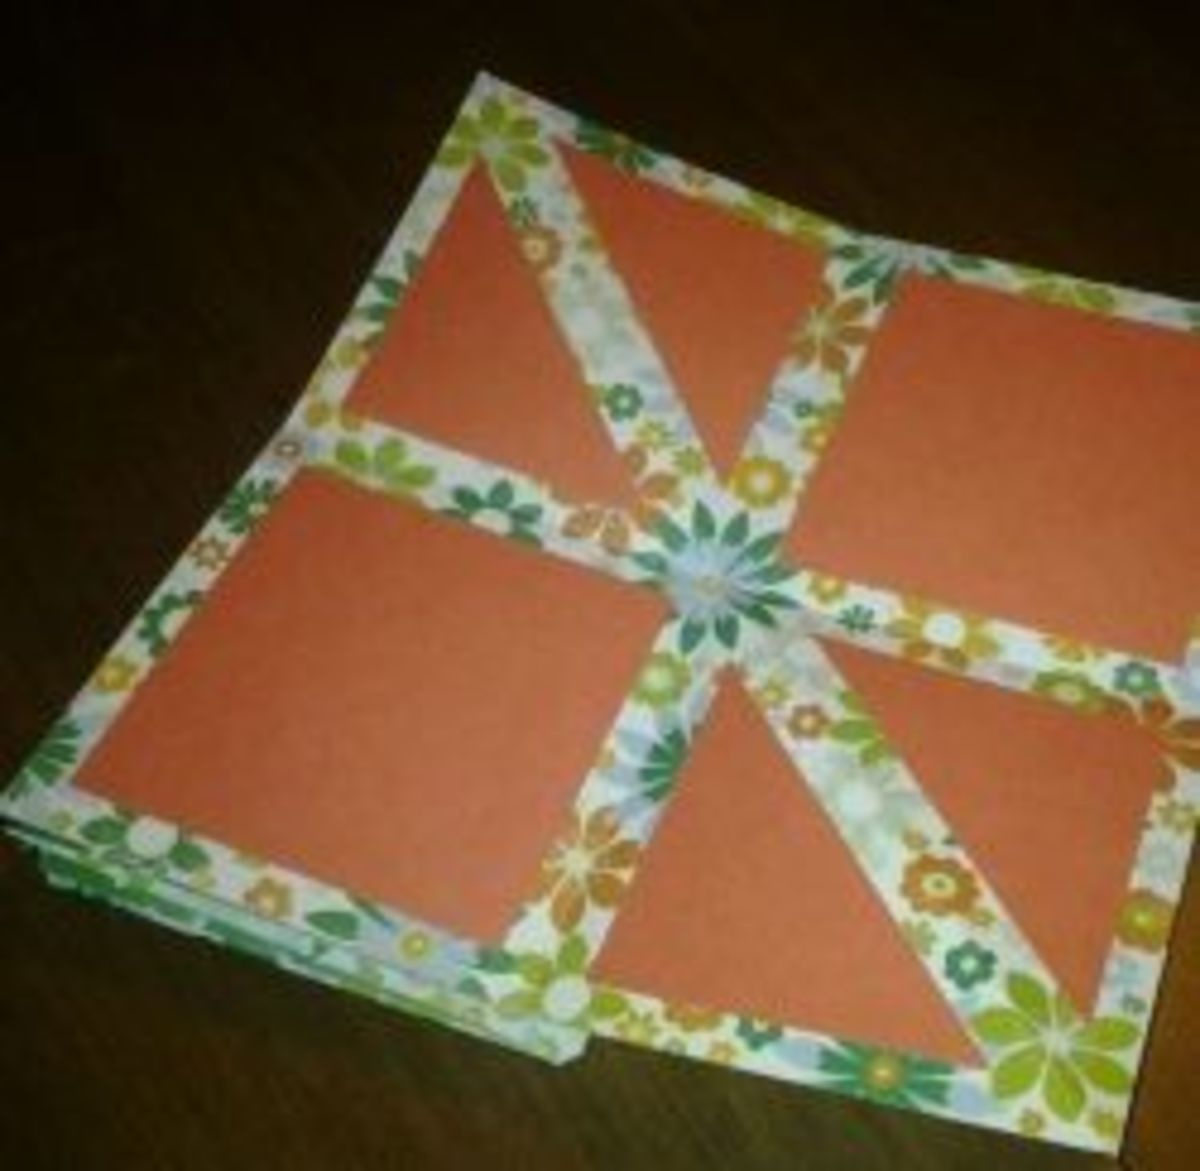 Tutorial: Personalized Pop-Up Scrapbook with Origami Folds